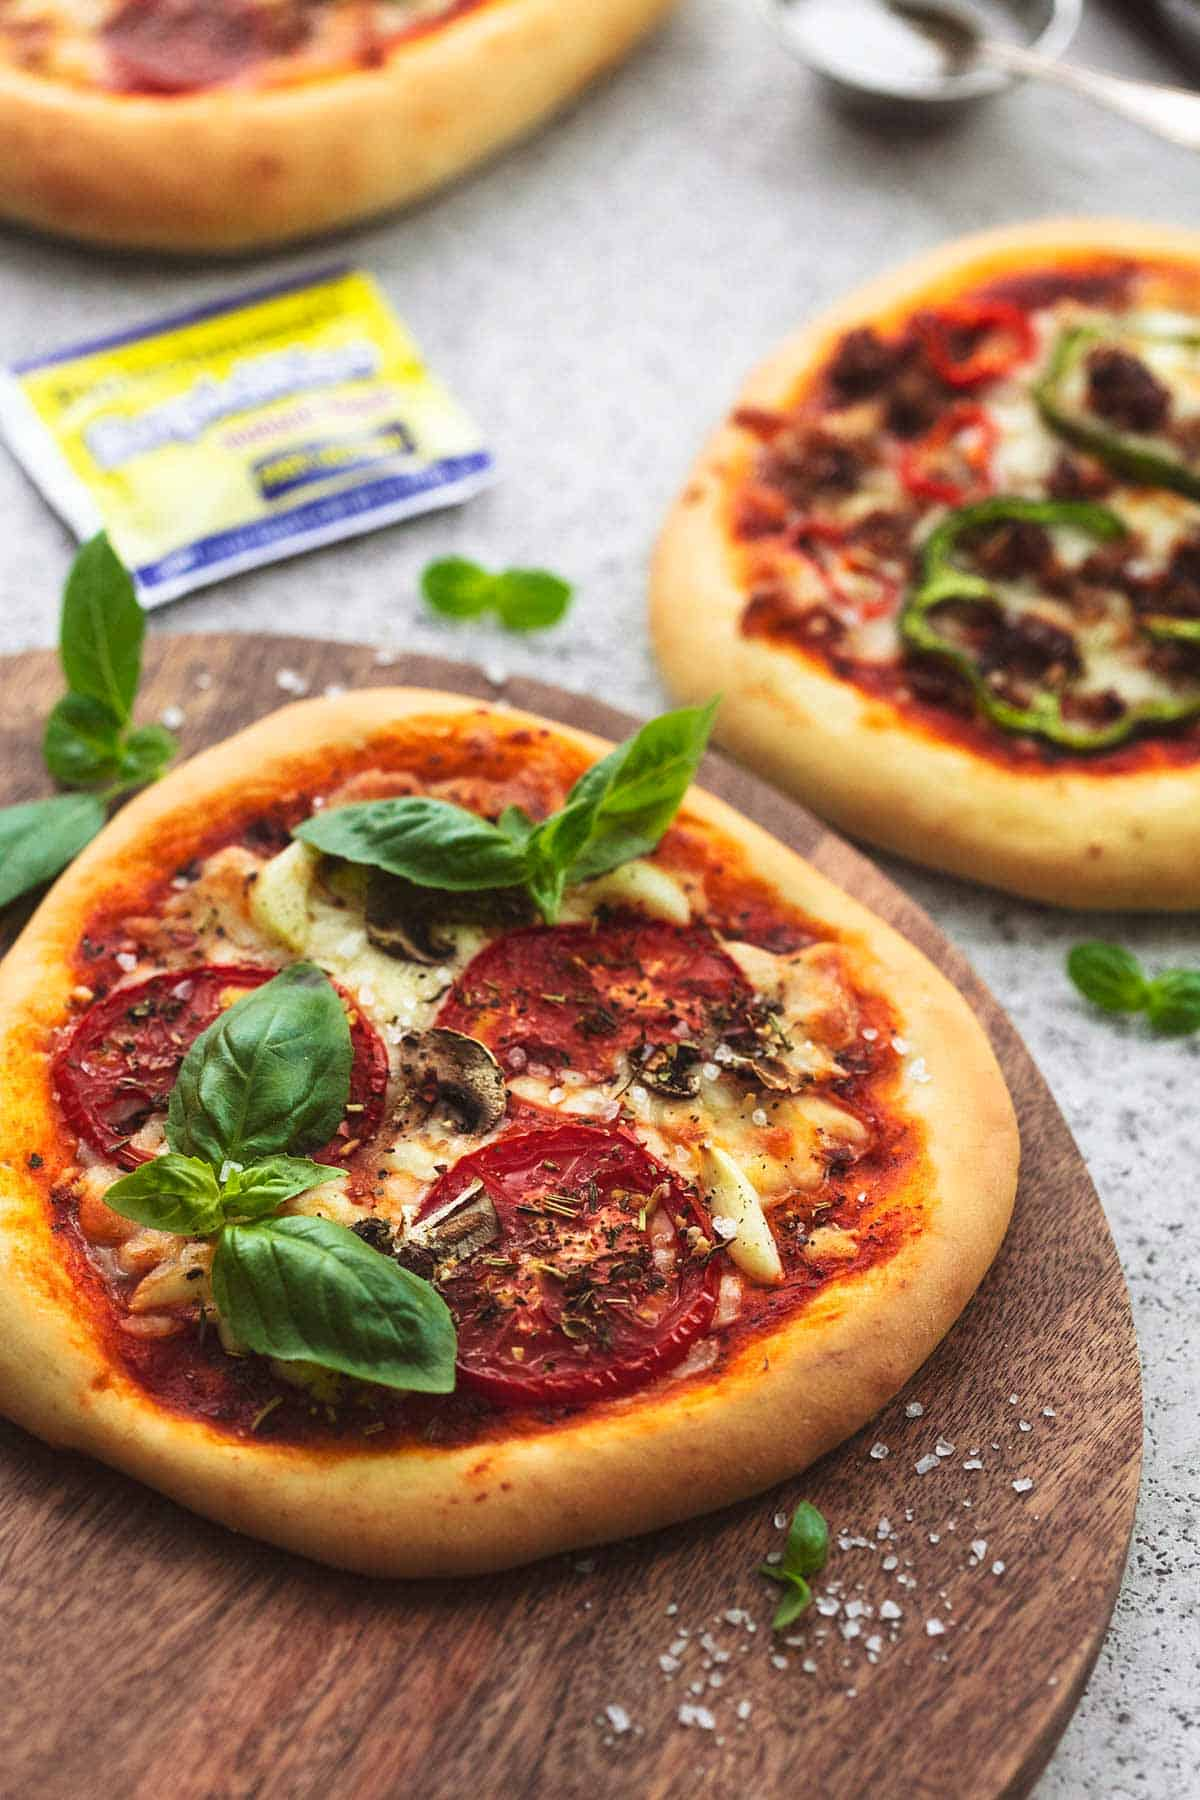 personal pizzas on wooden cutting board with yeast packet in background